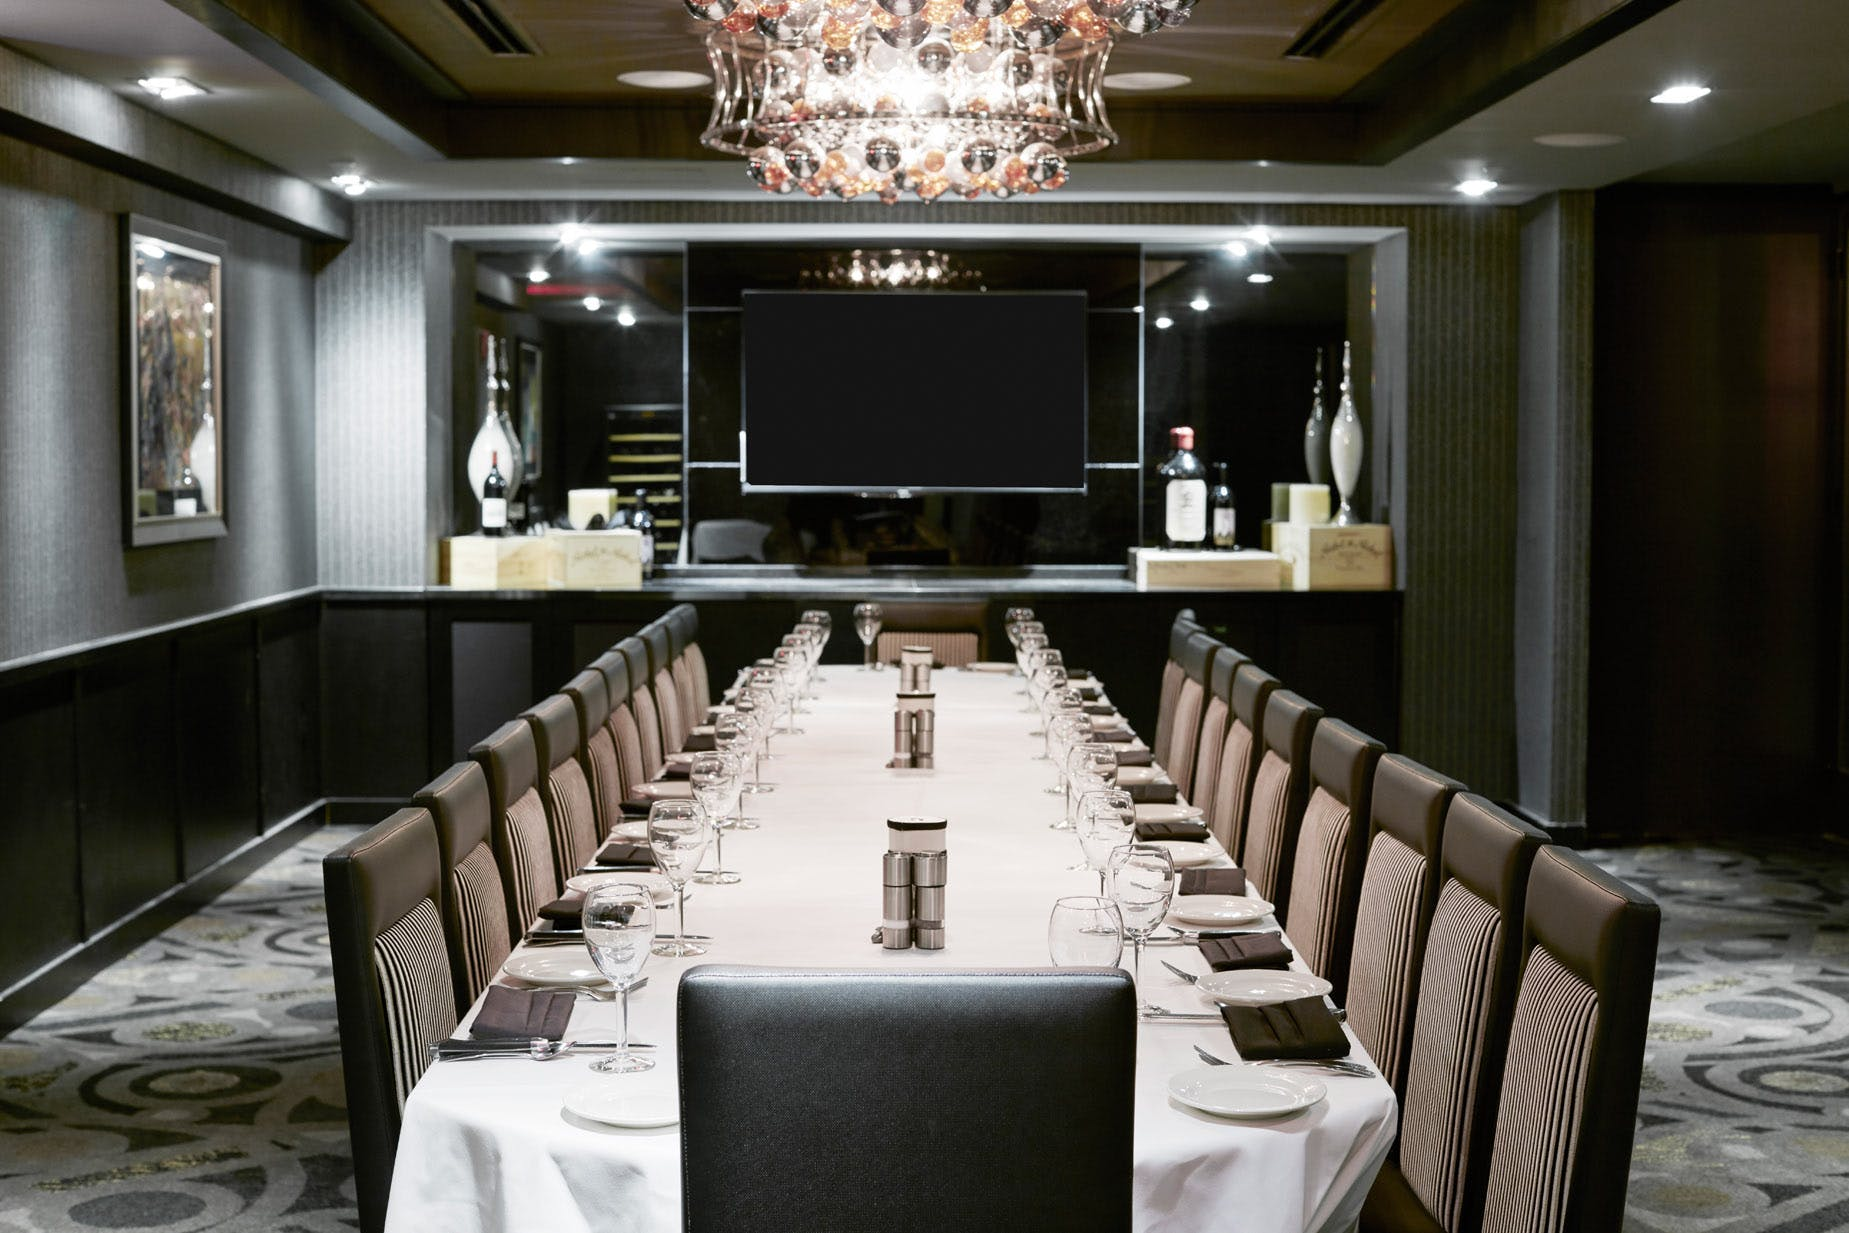 Meetings & Events Space at Mortons The Steakhouse at Club Quarters Hotel, World Trade Center